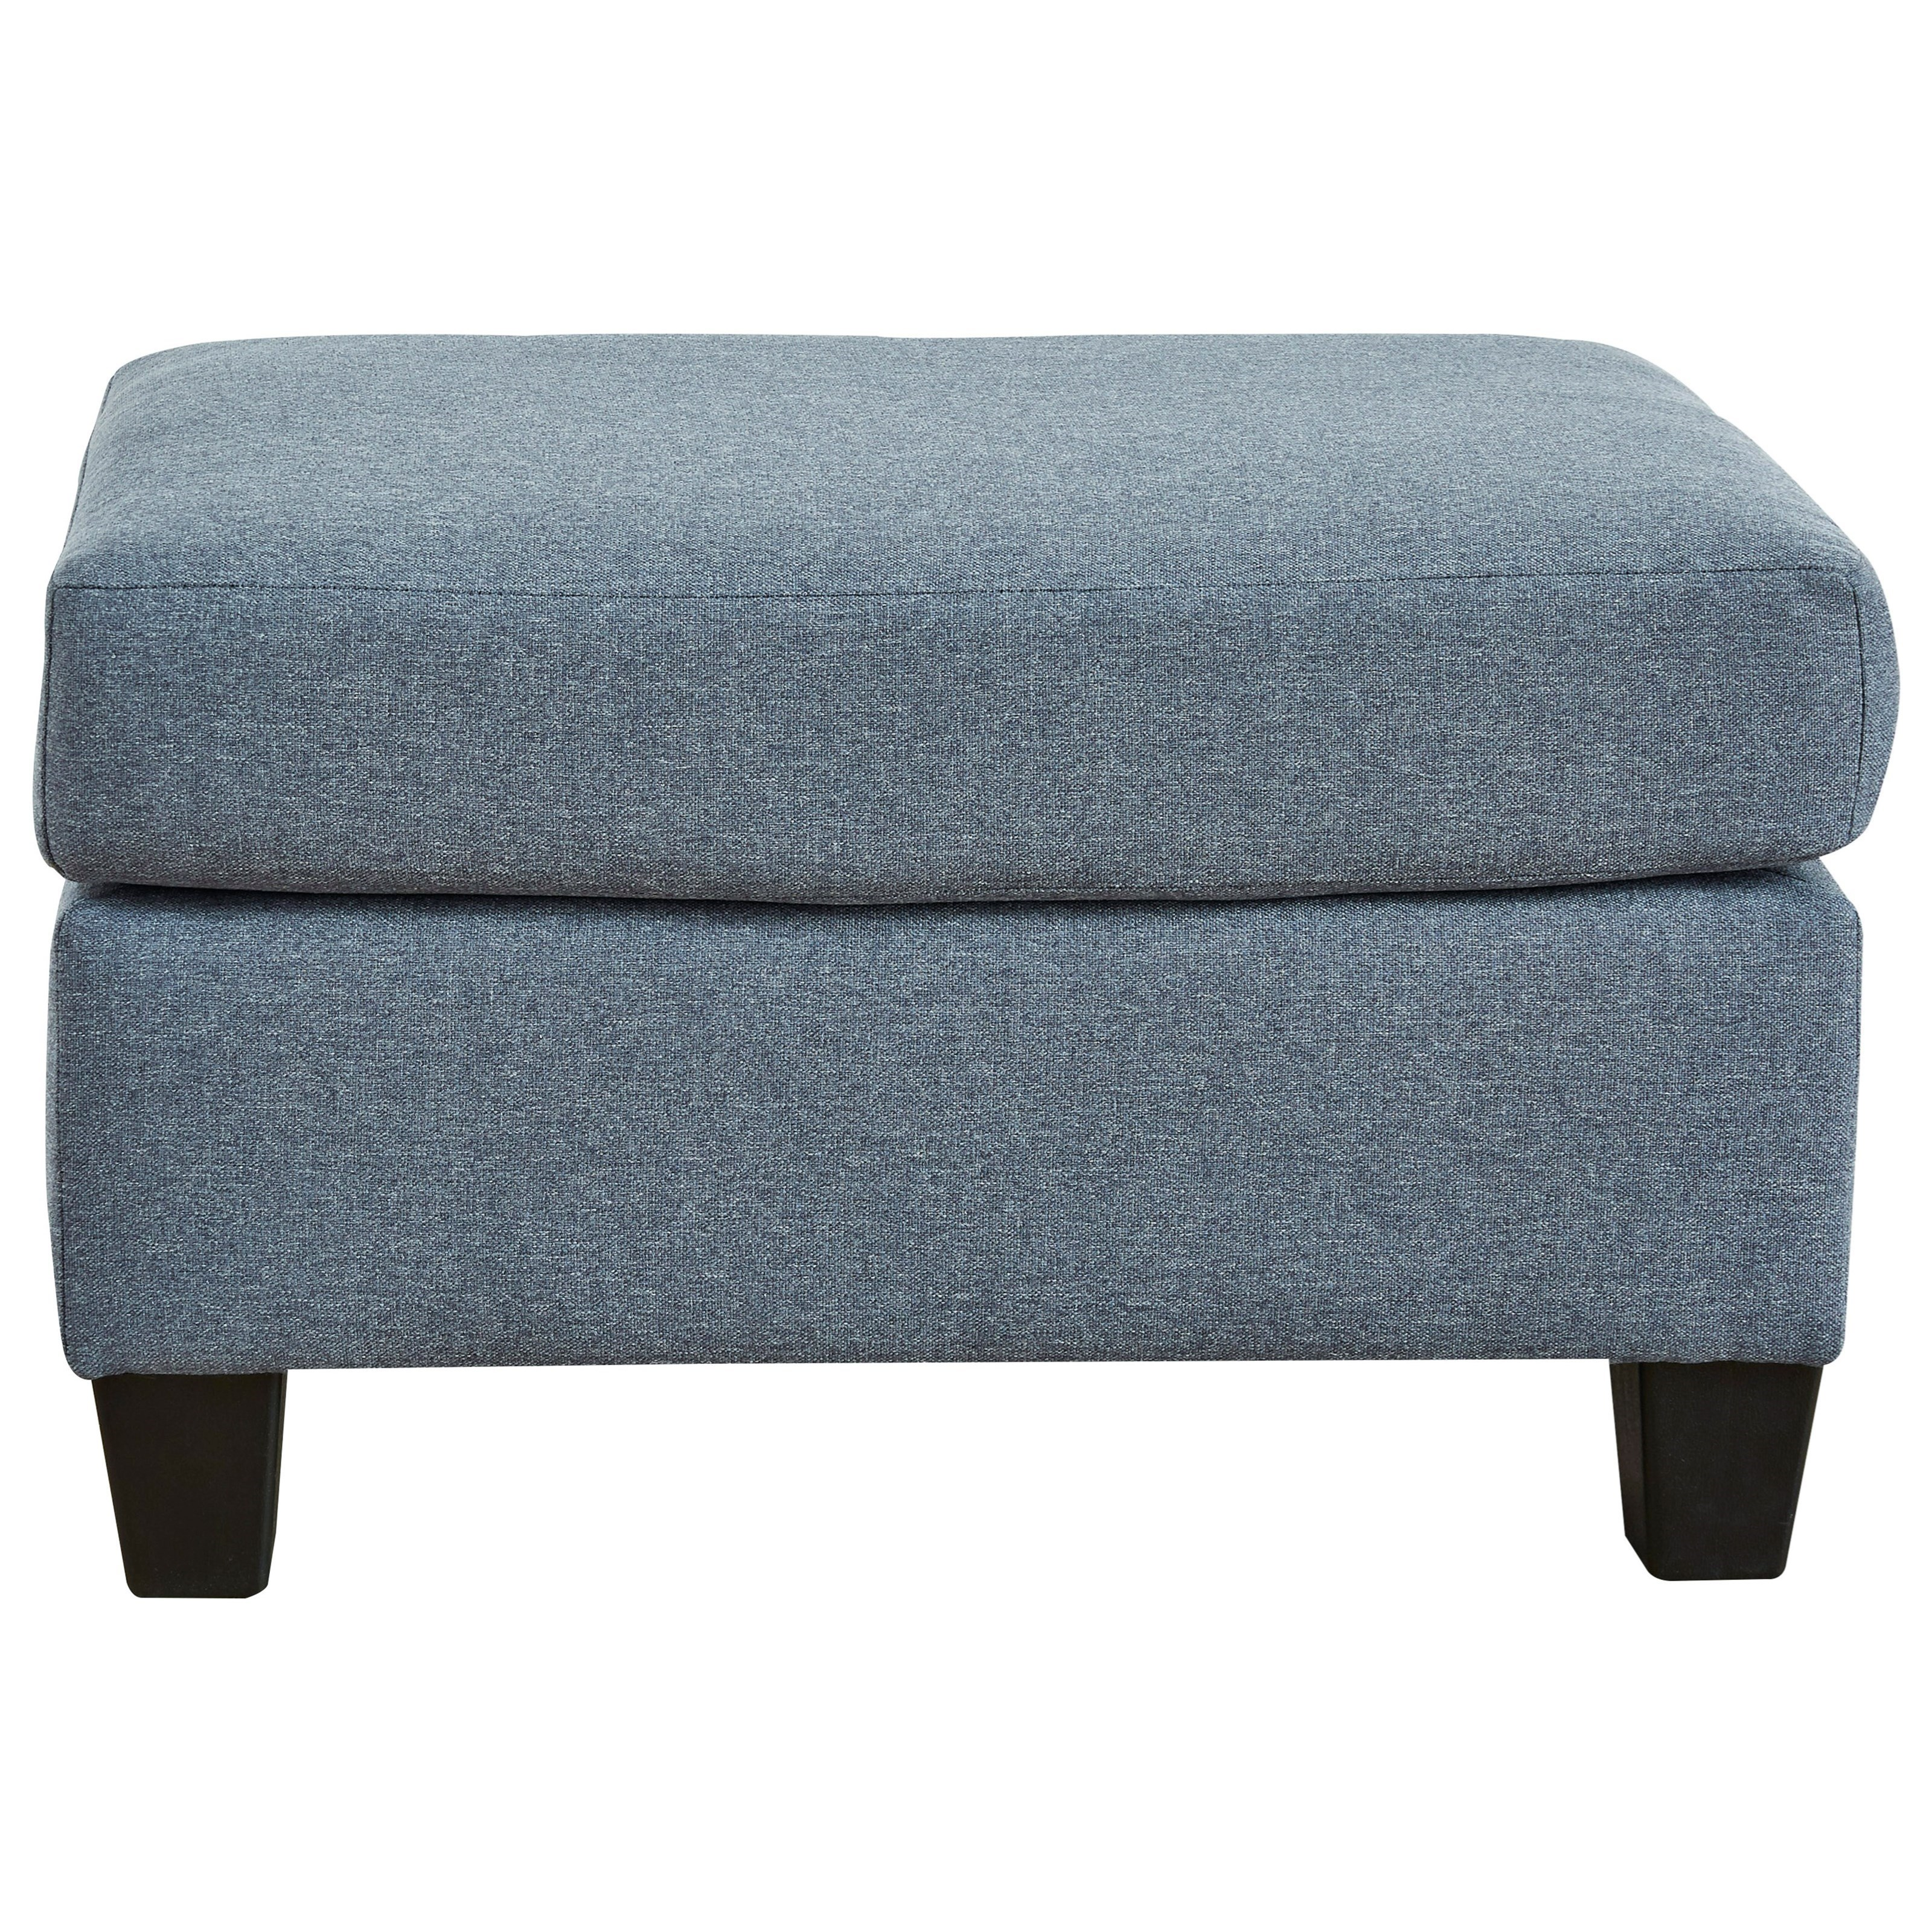 Lemly Ottoman by Benchcraft at Beck's Furniture